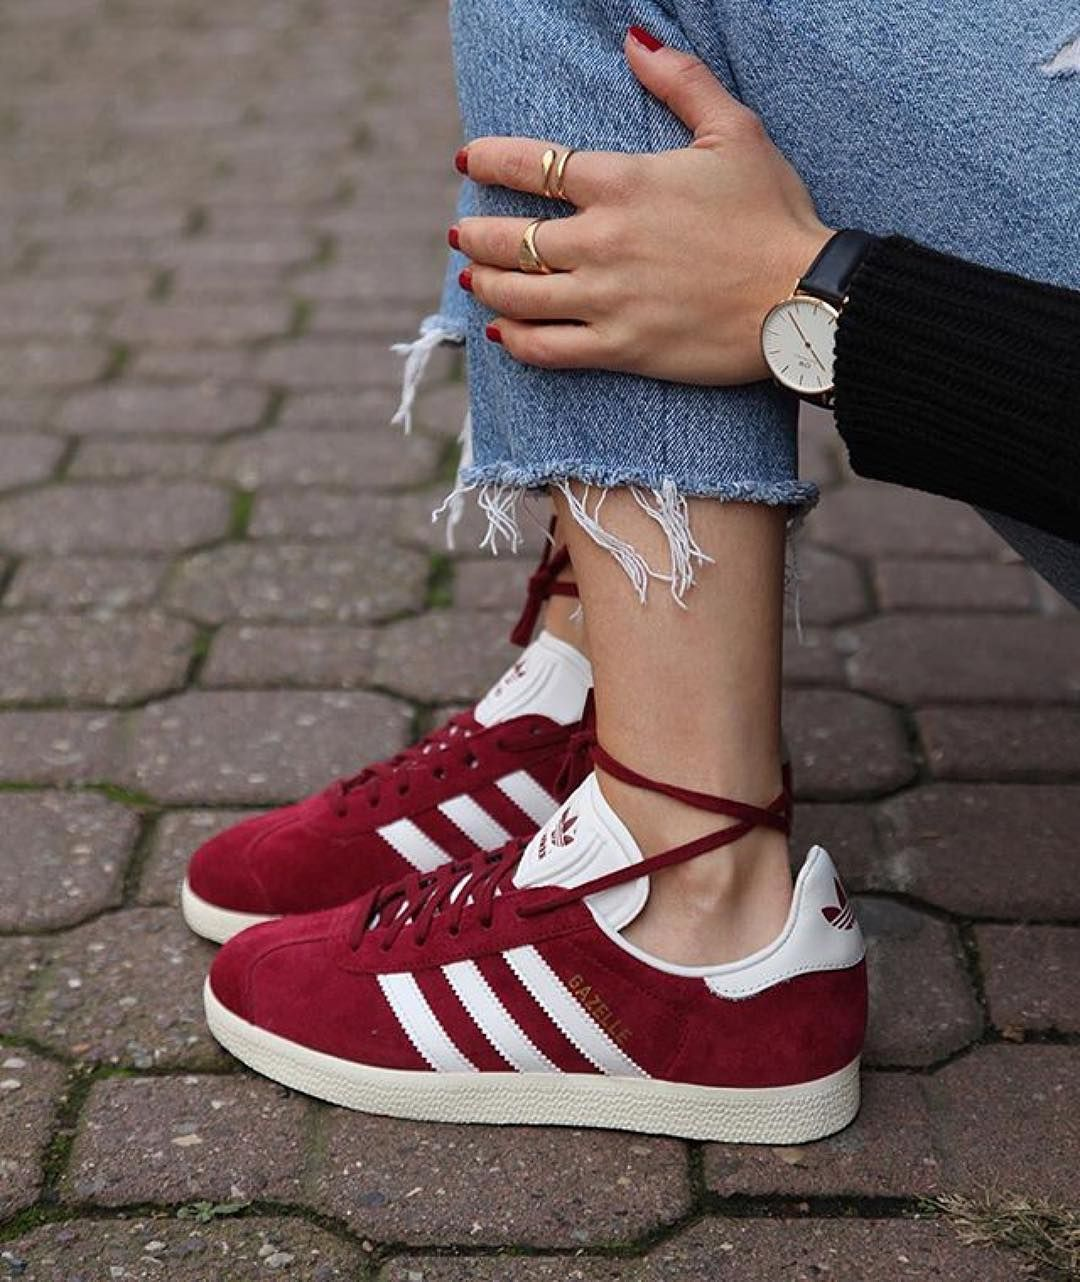 adidasrunning on adidas gazelle sneakers women and adidas. Black Bedroom Furniture Sets. Home Design Ideas